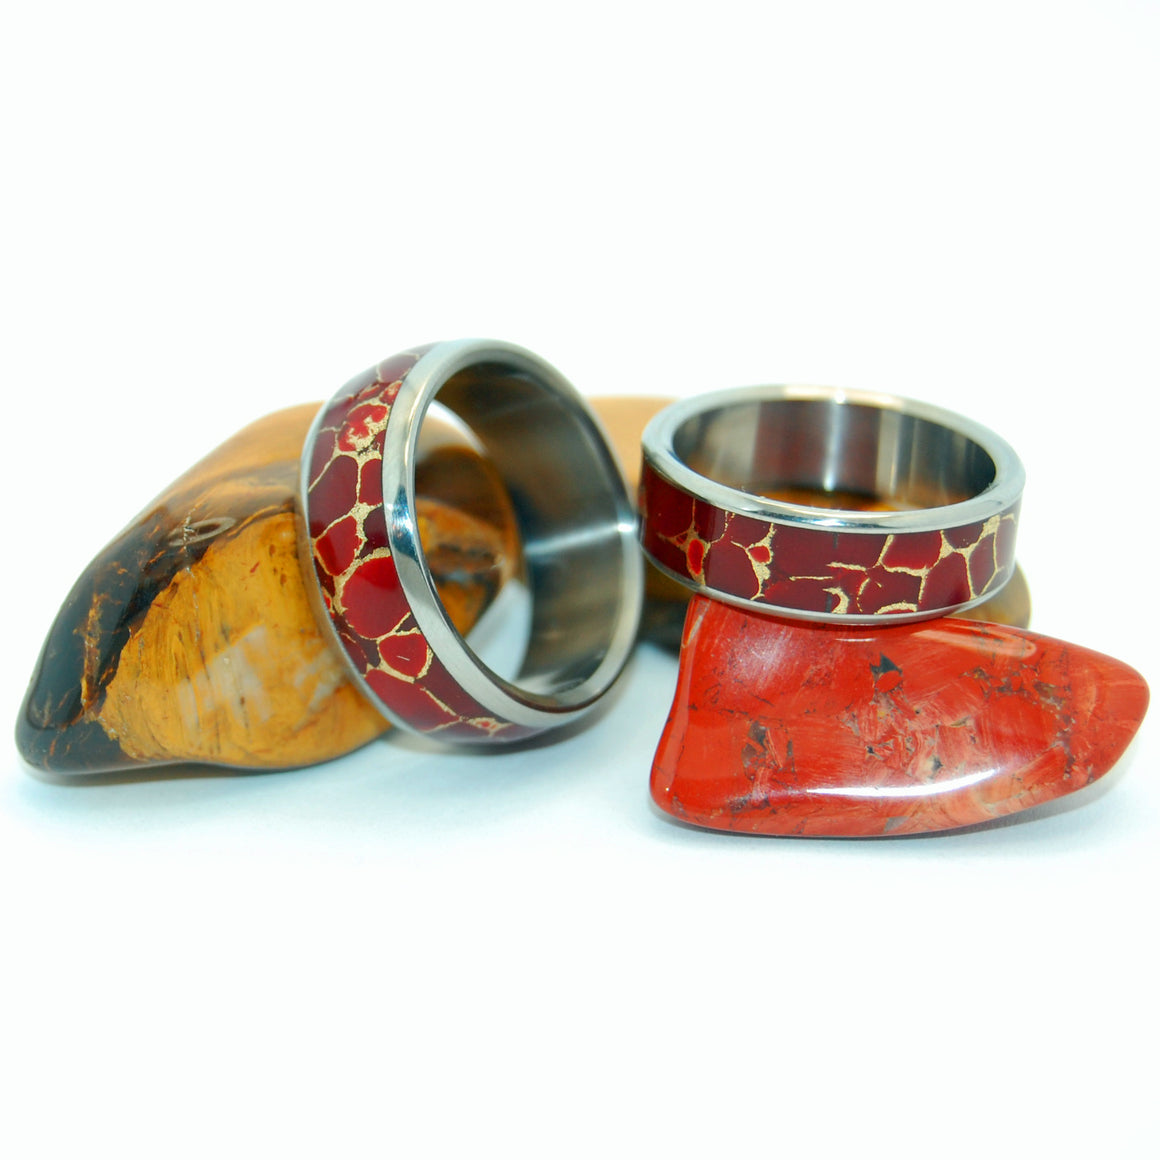 RED JASPER WEDDING SET | Jasper Stone & Titanium - Unique Wedding Rings - Women's Wedding RingsH - Minter and Richter Designs